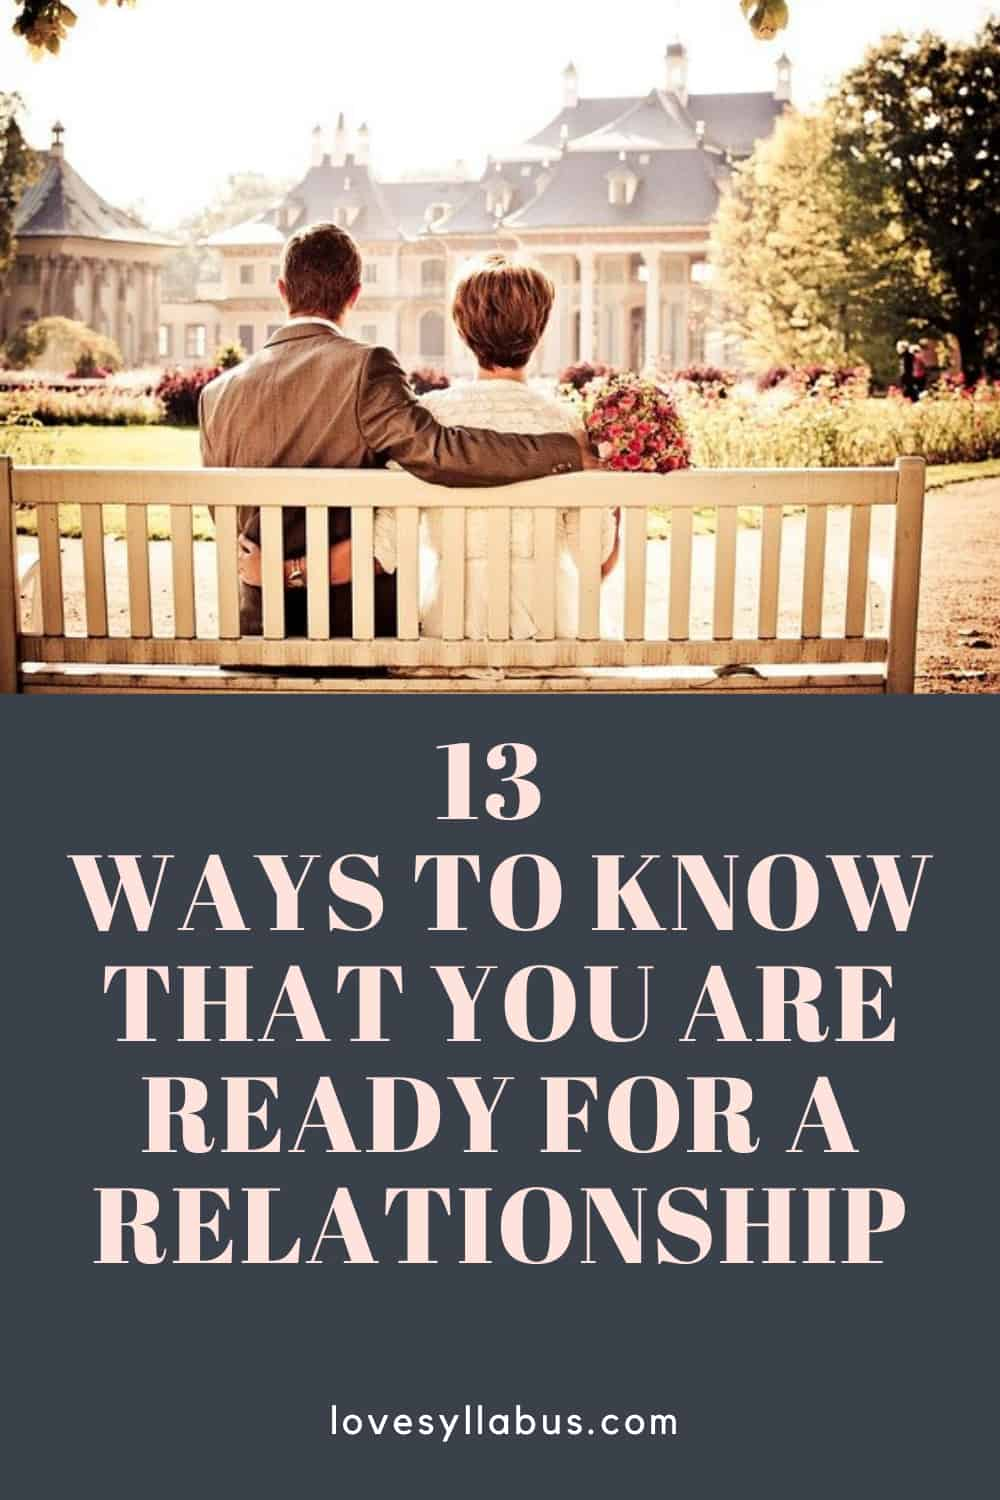 How To Know If You Are Ready For A Relationship